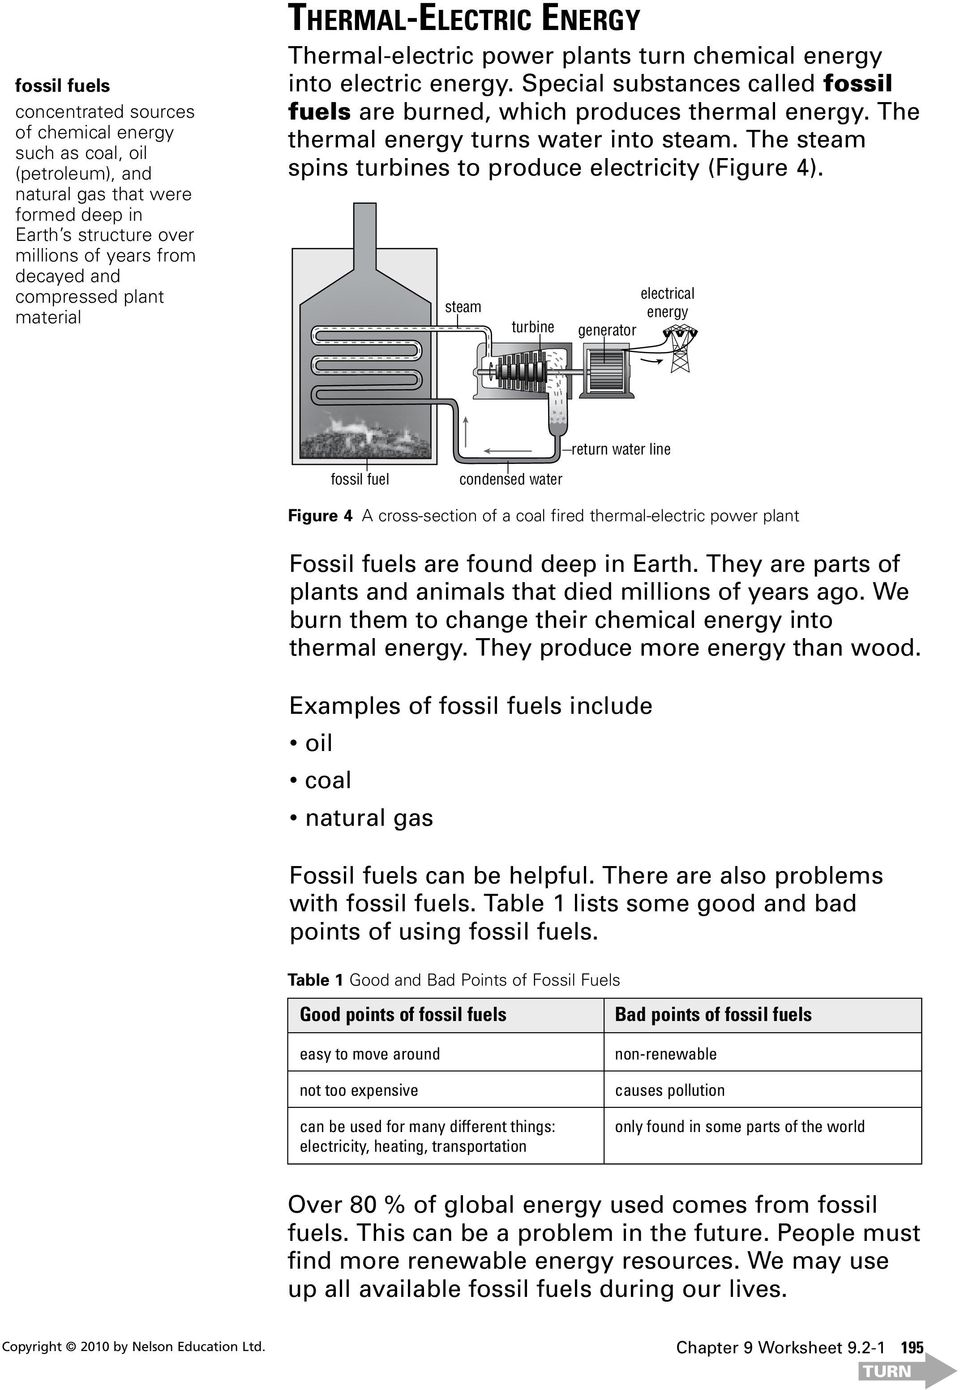 The thermal energy turns water into steam. The steam spins turbines to produce electricity (Figure 4).